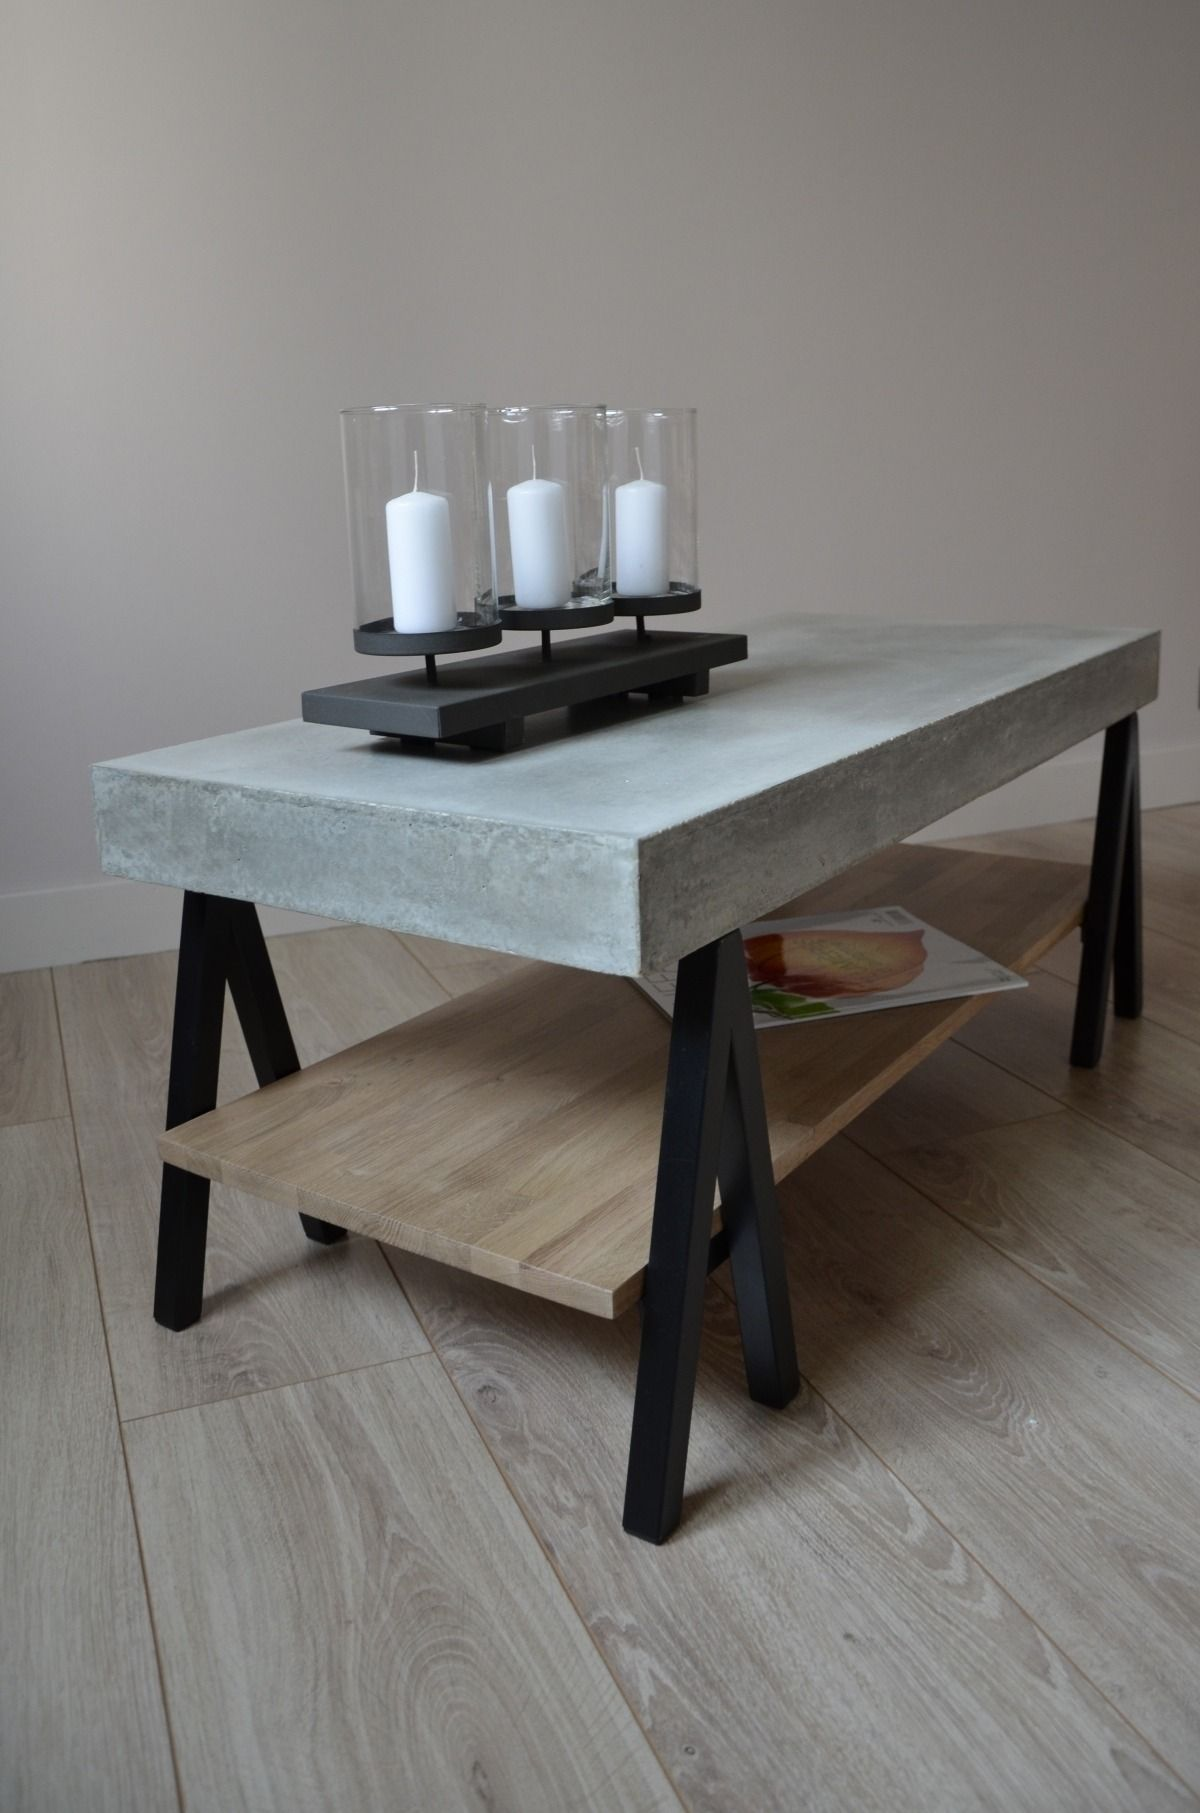 Table basse b ton bois ch ne et m tal acier coffee tables pinterest ba - Table basse metallique ...